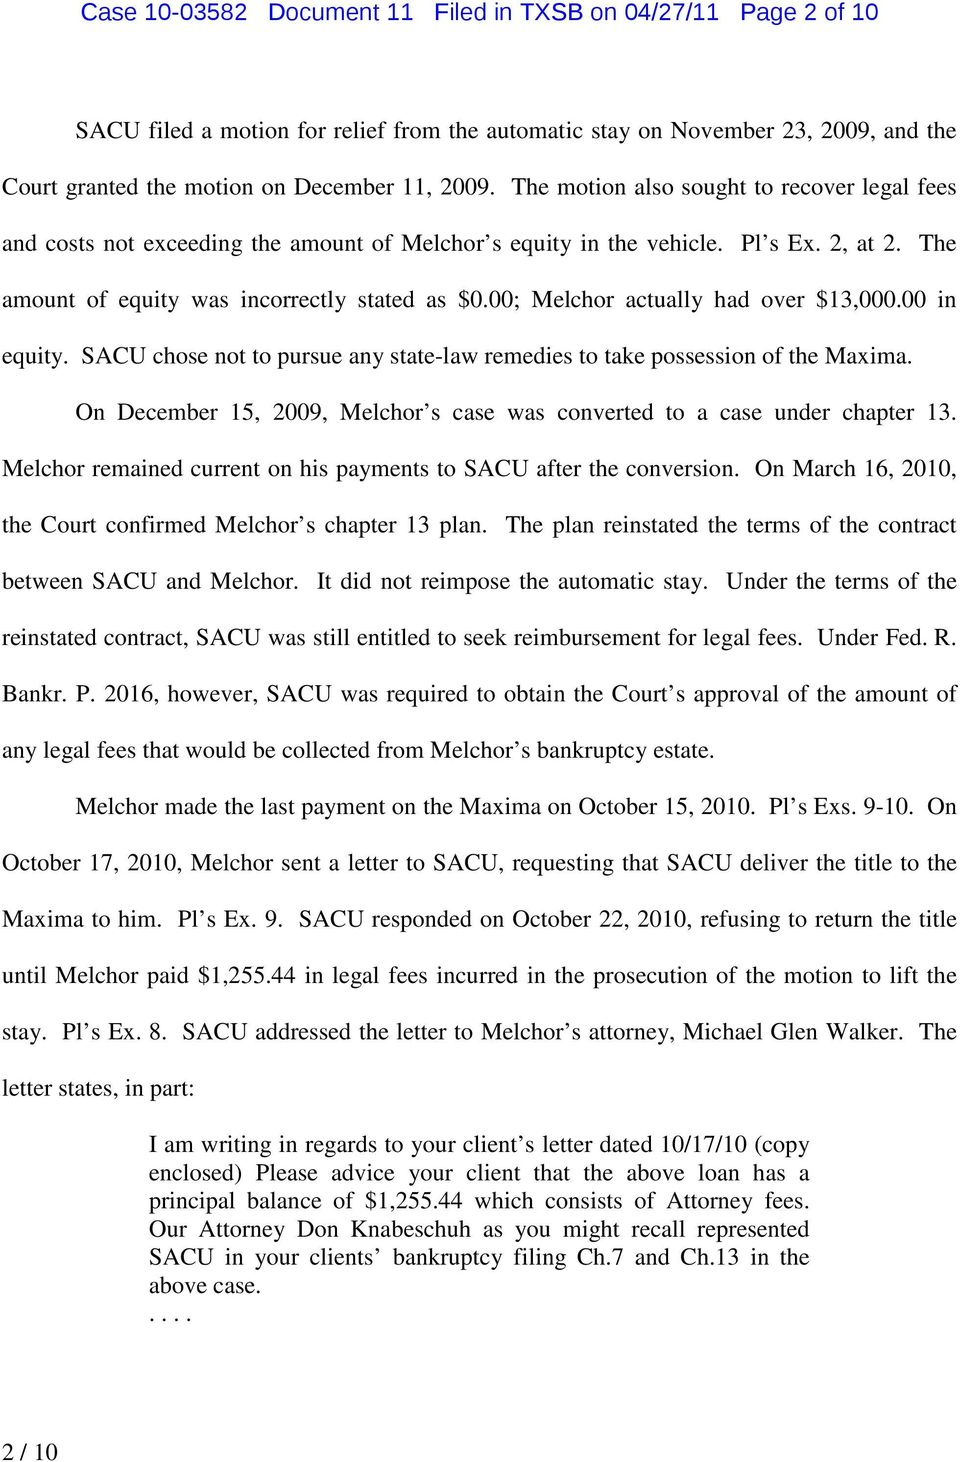 00; Melchor actually had over $13,000.00 in equity. SACU chose not to pursue any state-law remedies to take possession of the Maxima.